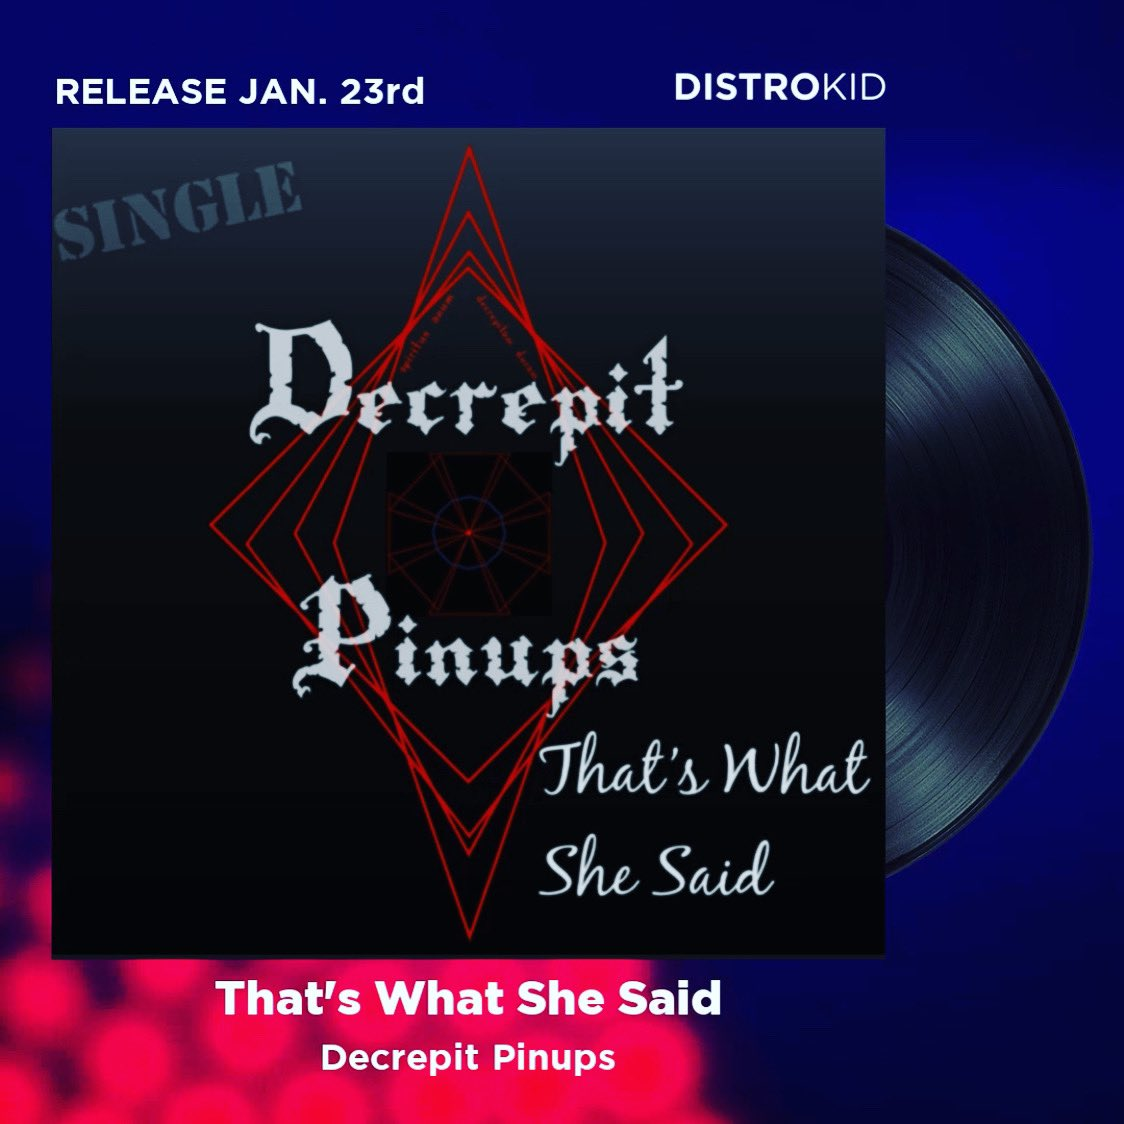 """Our single """"That's What She Said"""" is live. We'd love to hear what you think! Find it on #spotify #deezer #applemusic and more #rockguitar #rock #rockmusic #rockband #metal #metalhead #spotify #guitar #guitarist #newsong #newsingle #newsinglealert #newmusic #newmusicalert"""